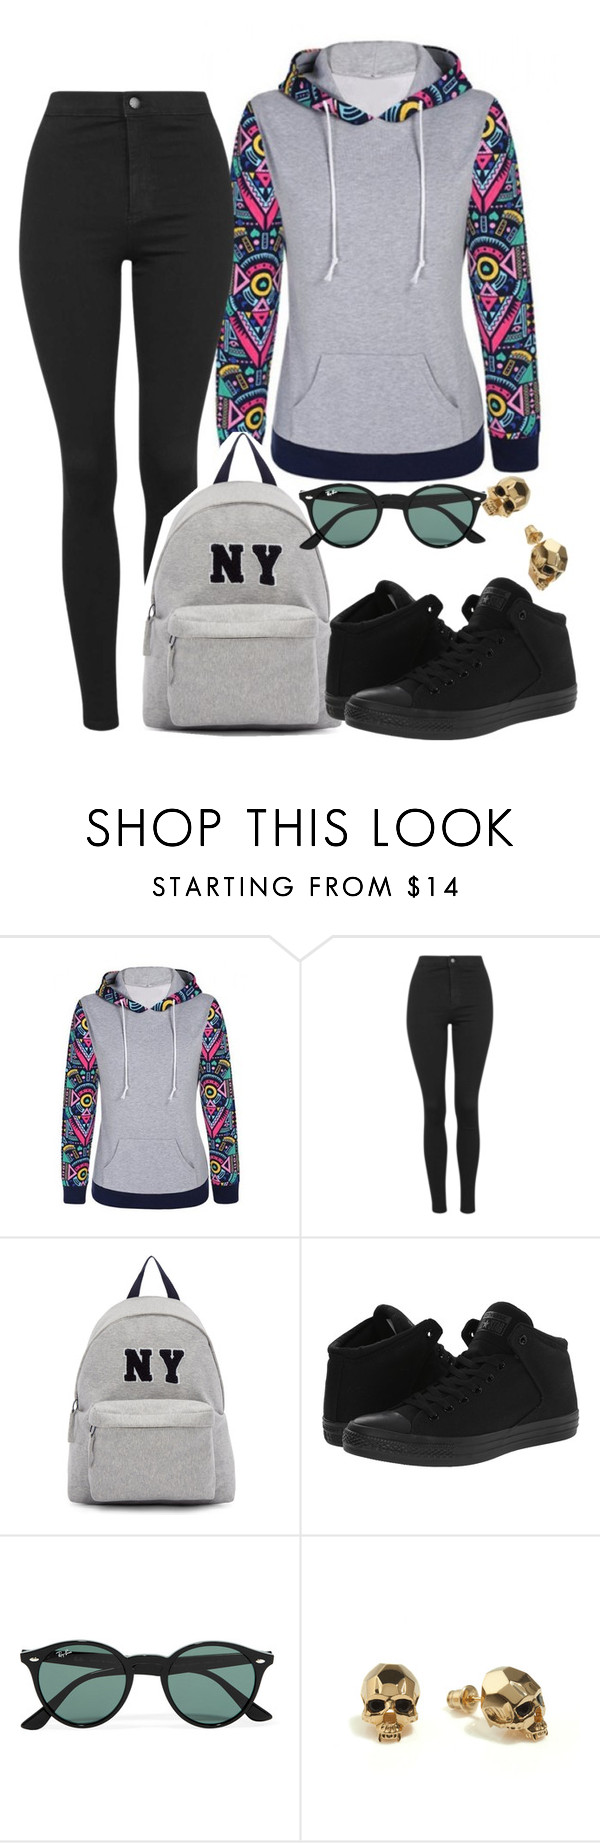 """3/24/2016"" by kimxphillips on Polyvore featuring Topshop, Joshua's, Converse, Ray-Ban, Kasun, converse and comfy"